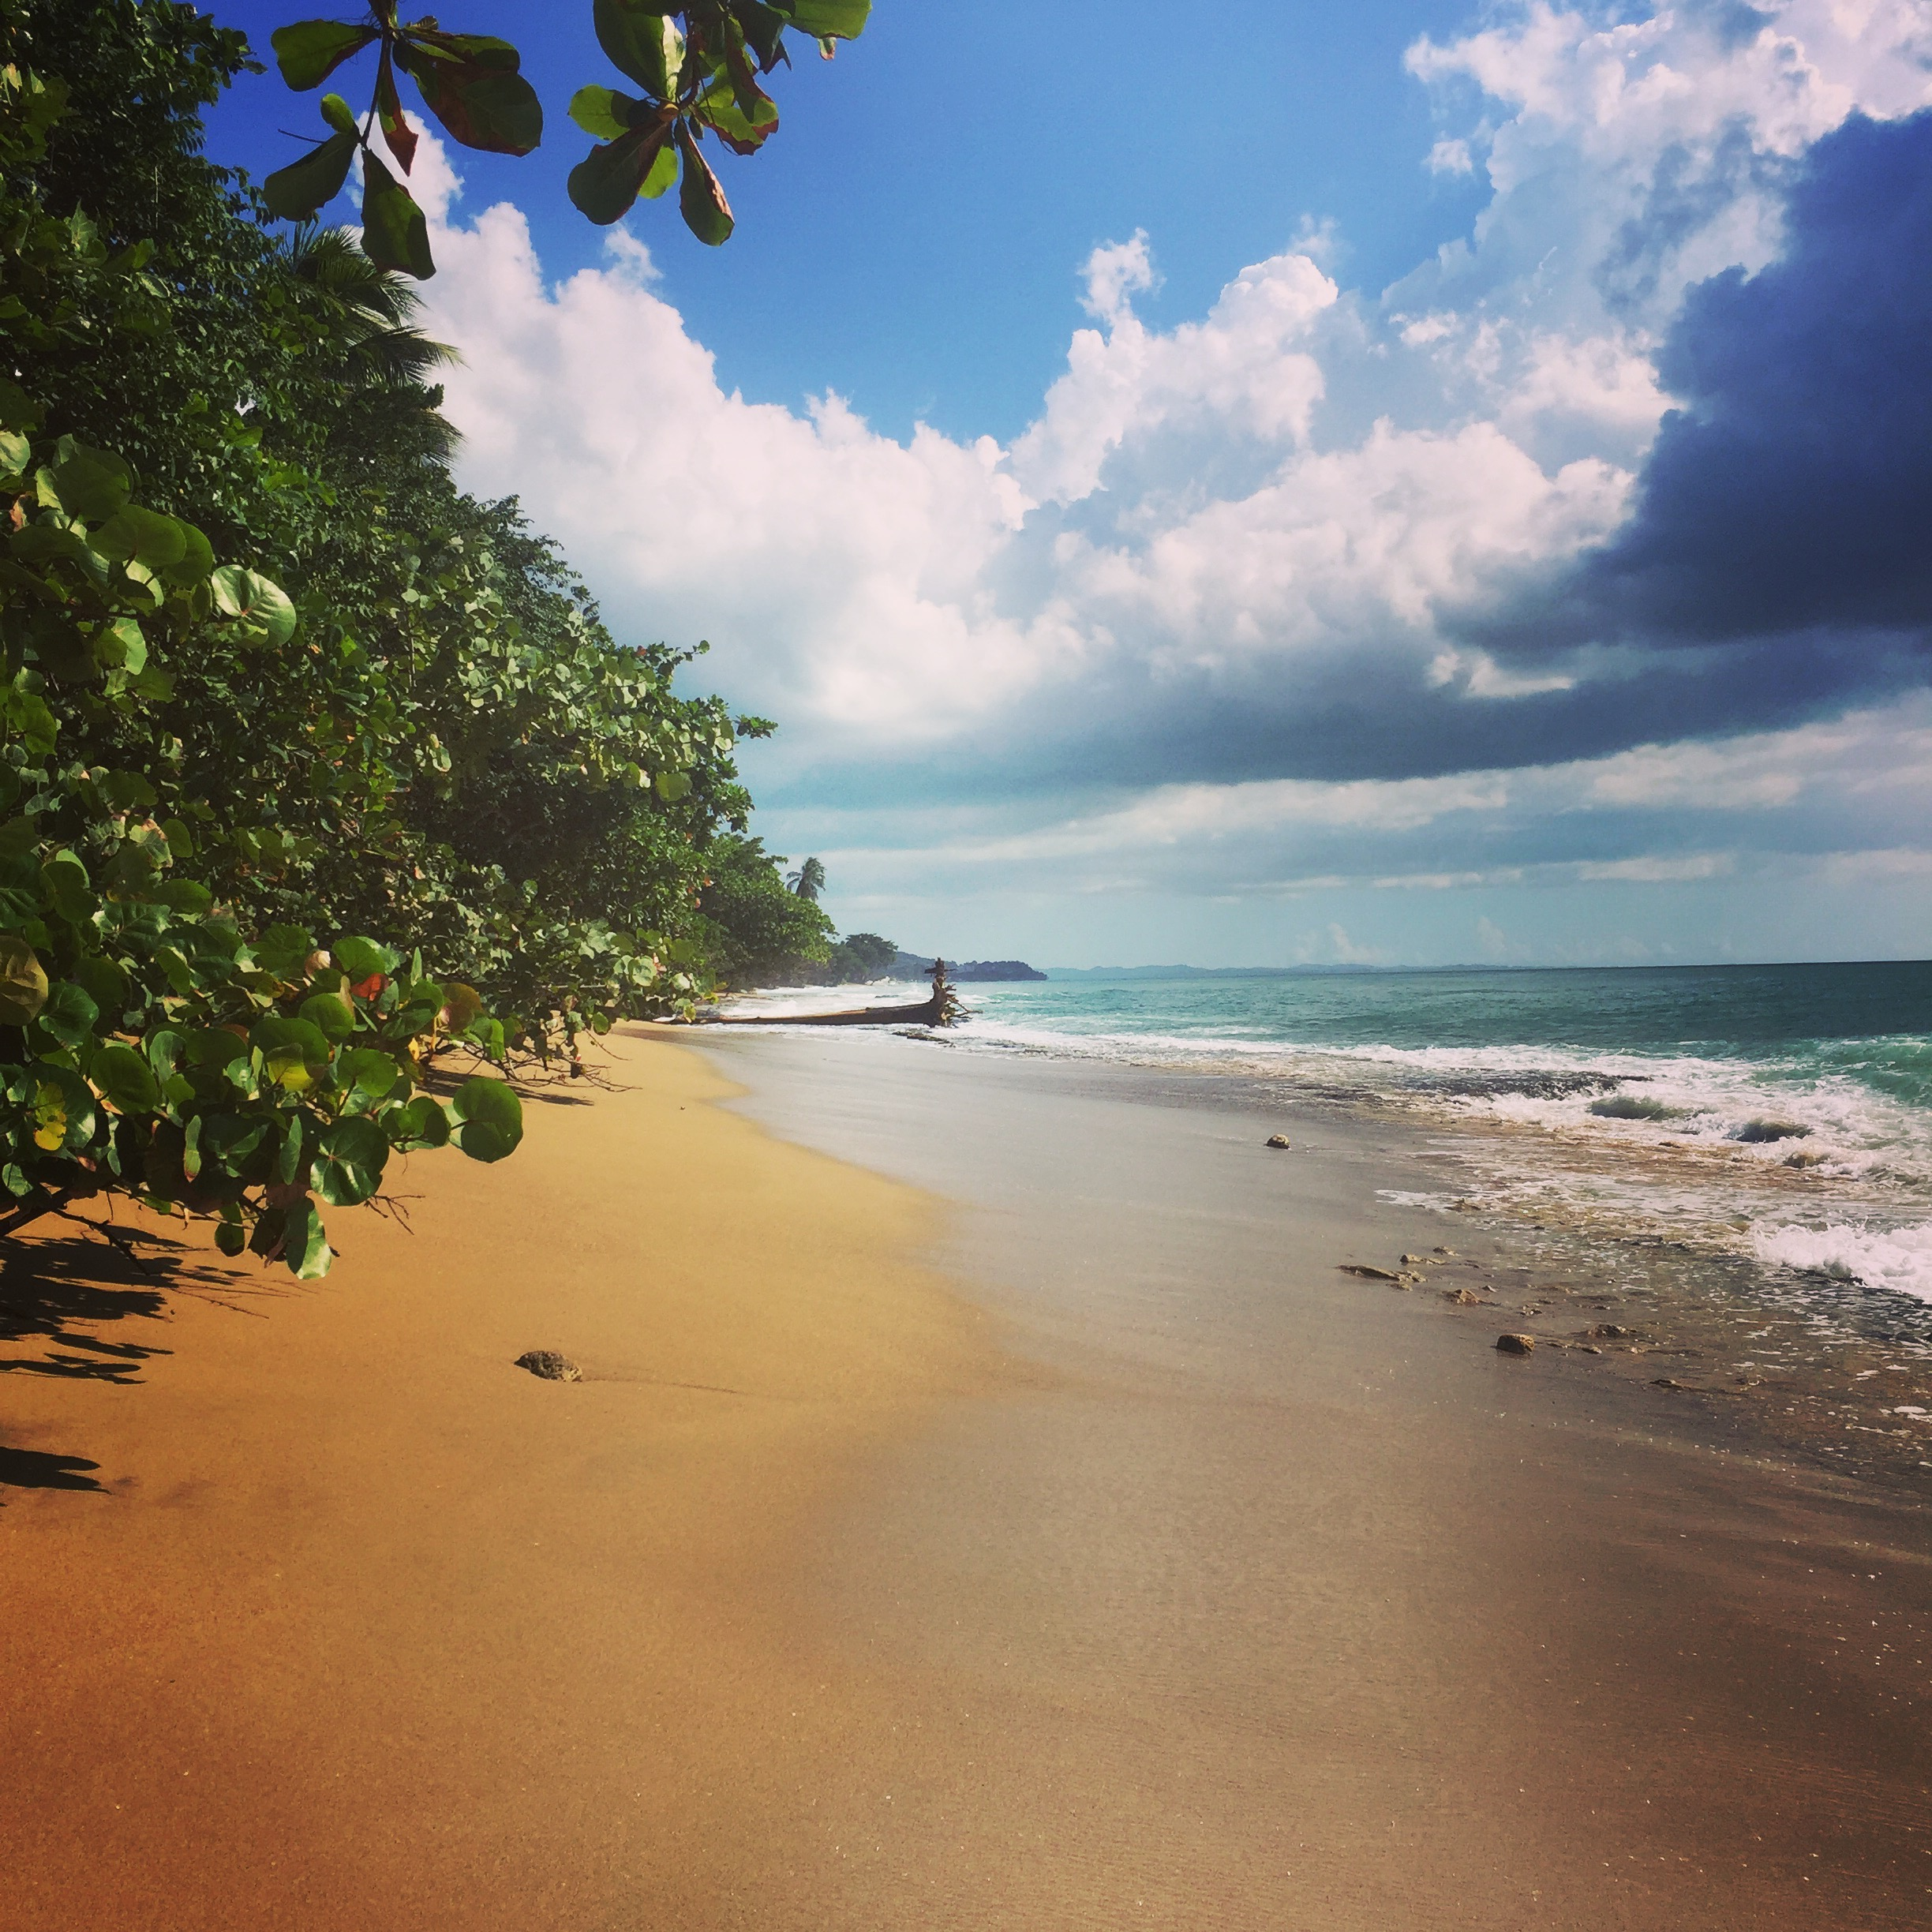 Walk the open sands... This is Rincon, Puerto Rico.